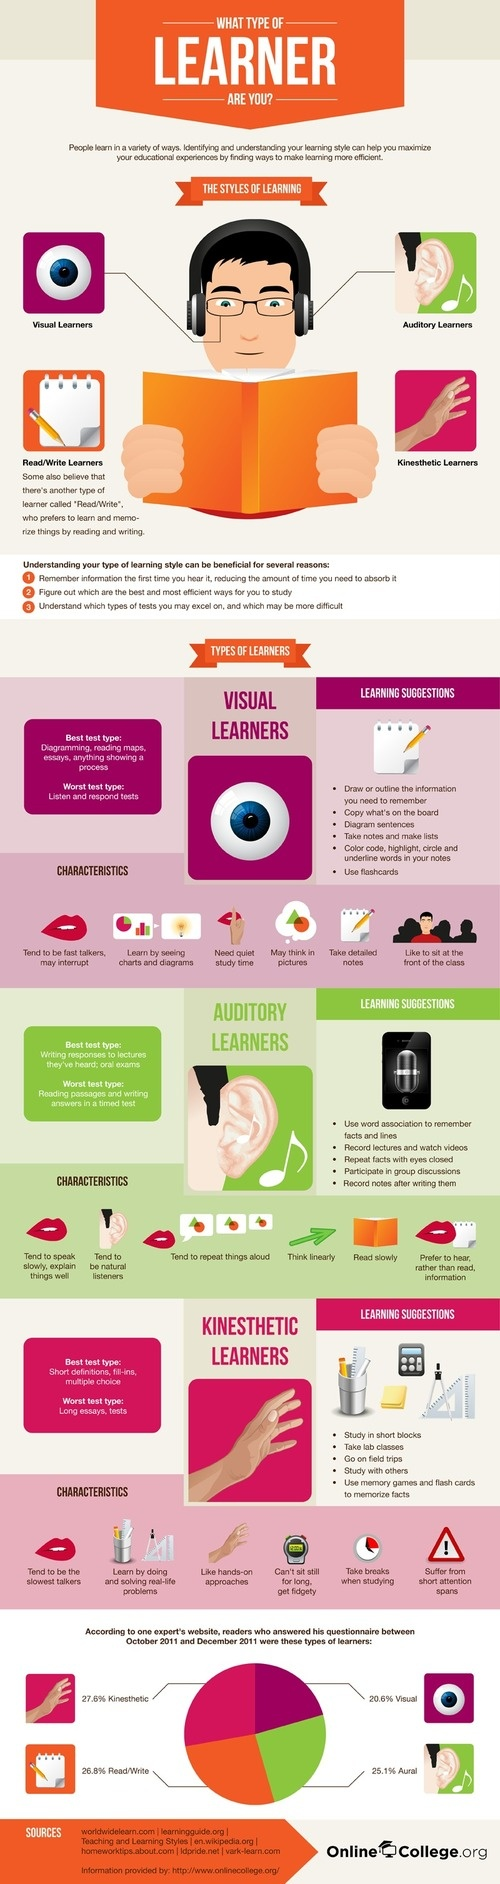 What-Type-Of-Learner-Are-You I'm a visual learner. Show me something once, maybe twice, and I've pretty much got it!